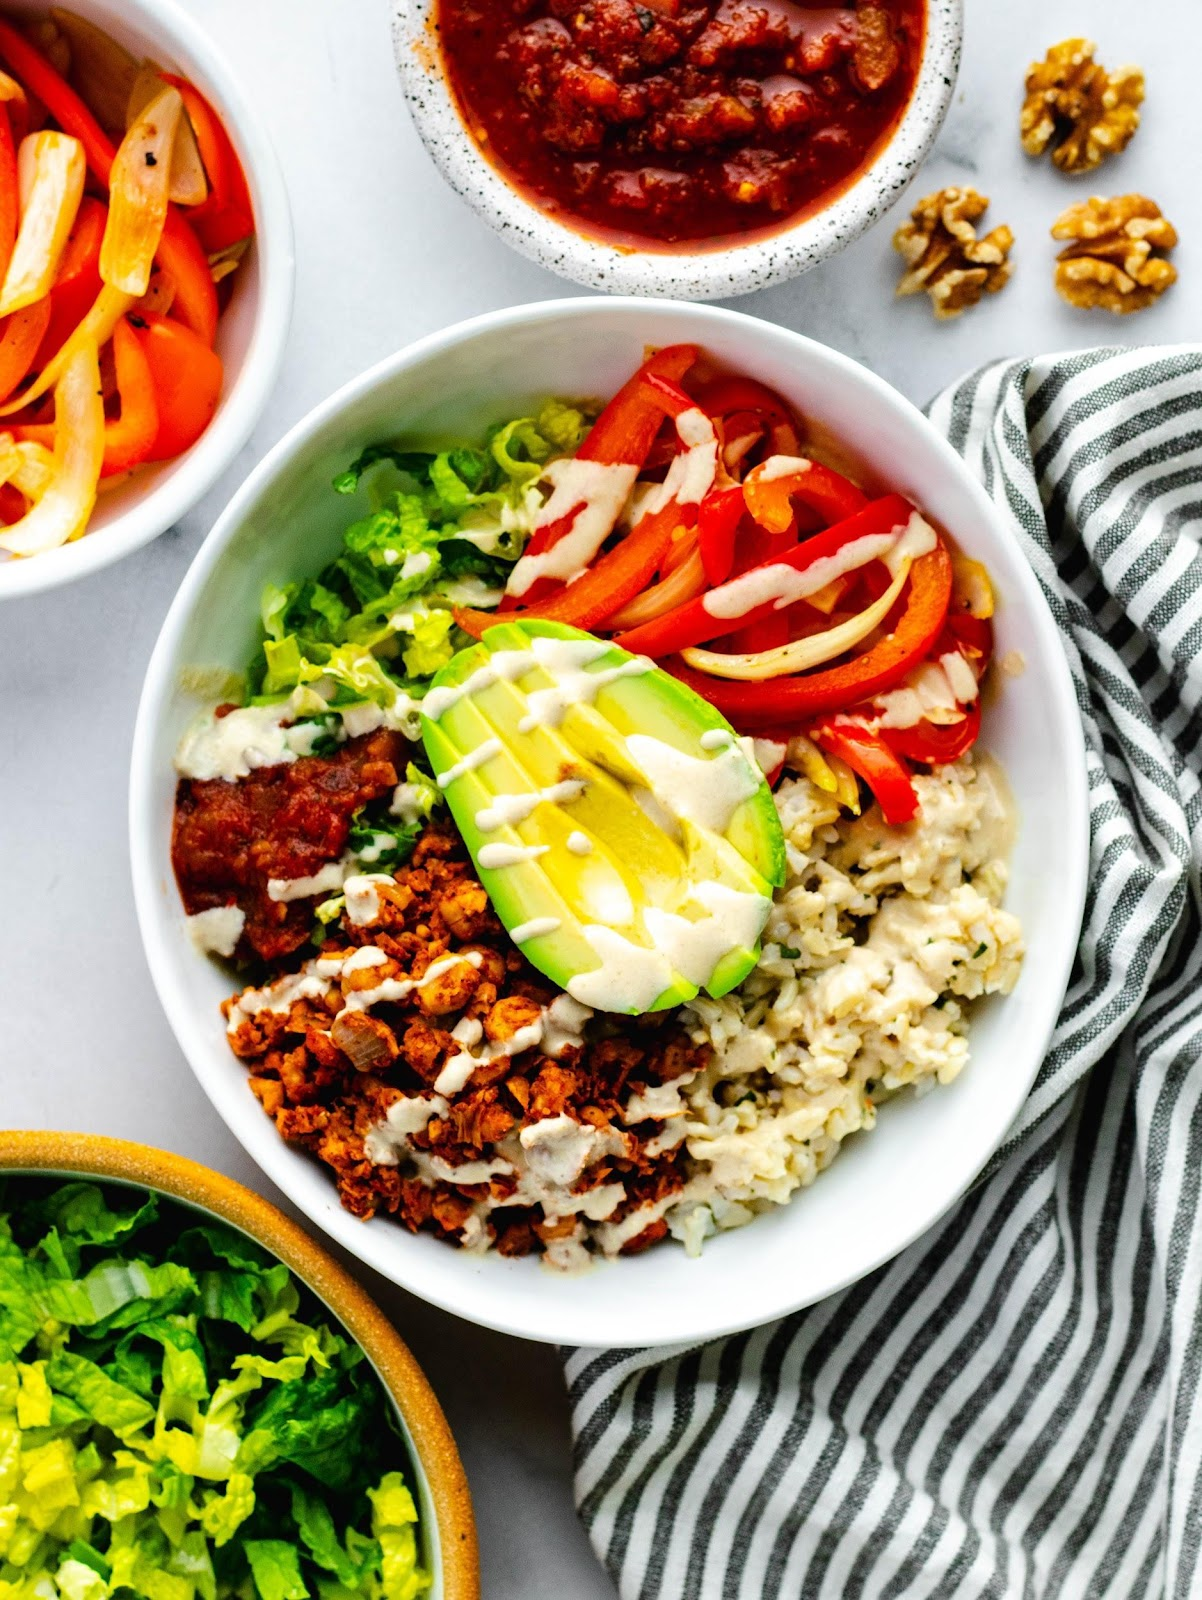 Vegan Burrito Bowls with Chickpea Walnut Taco Meat | Daisybeet, MS, RD